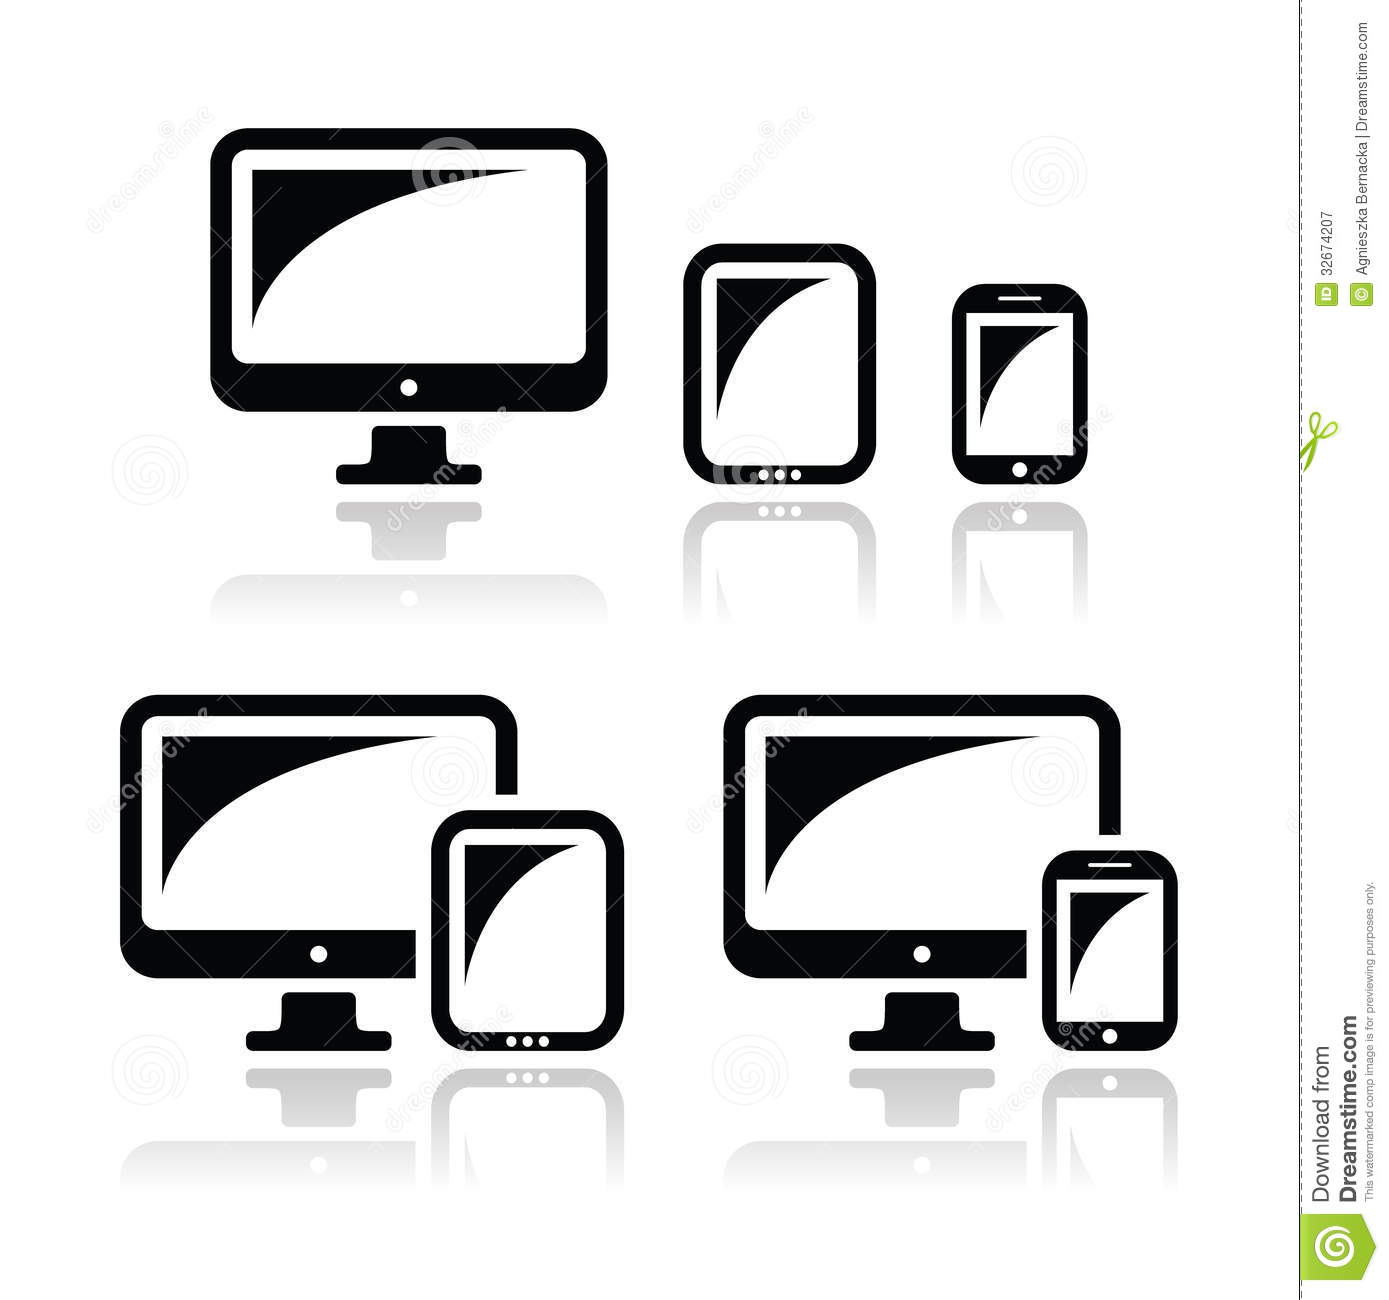 15 Smartphone Computer Icon Images